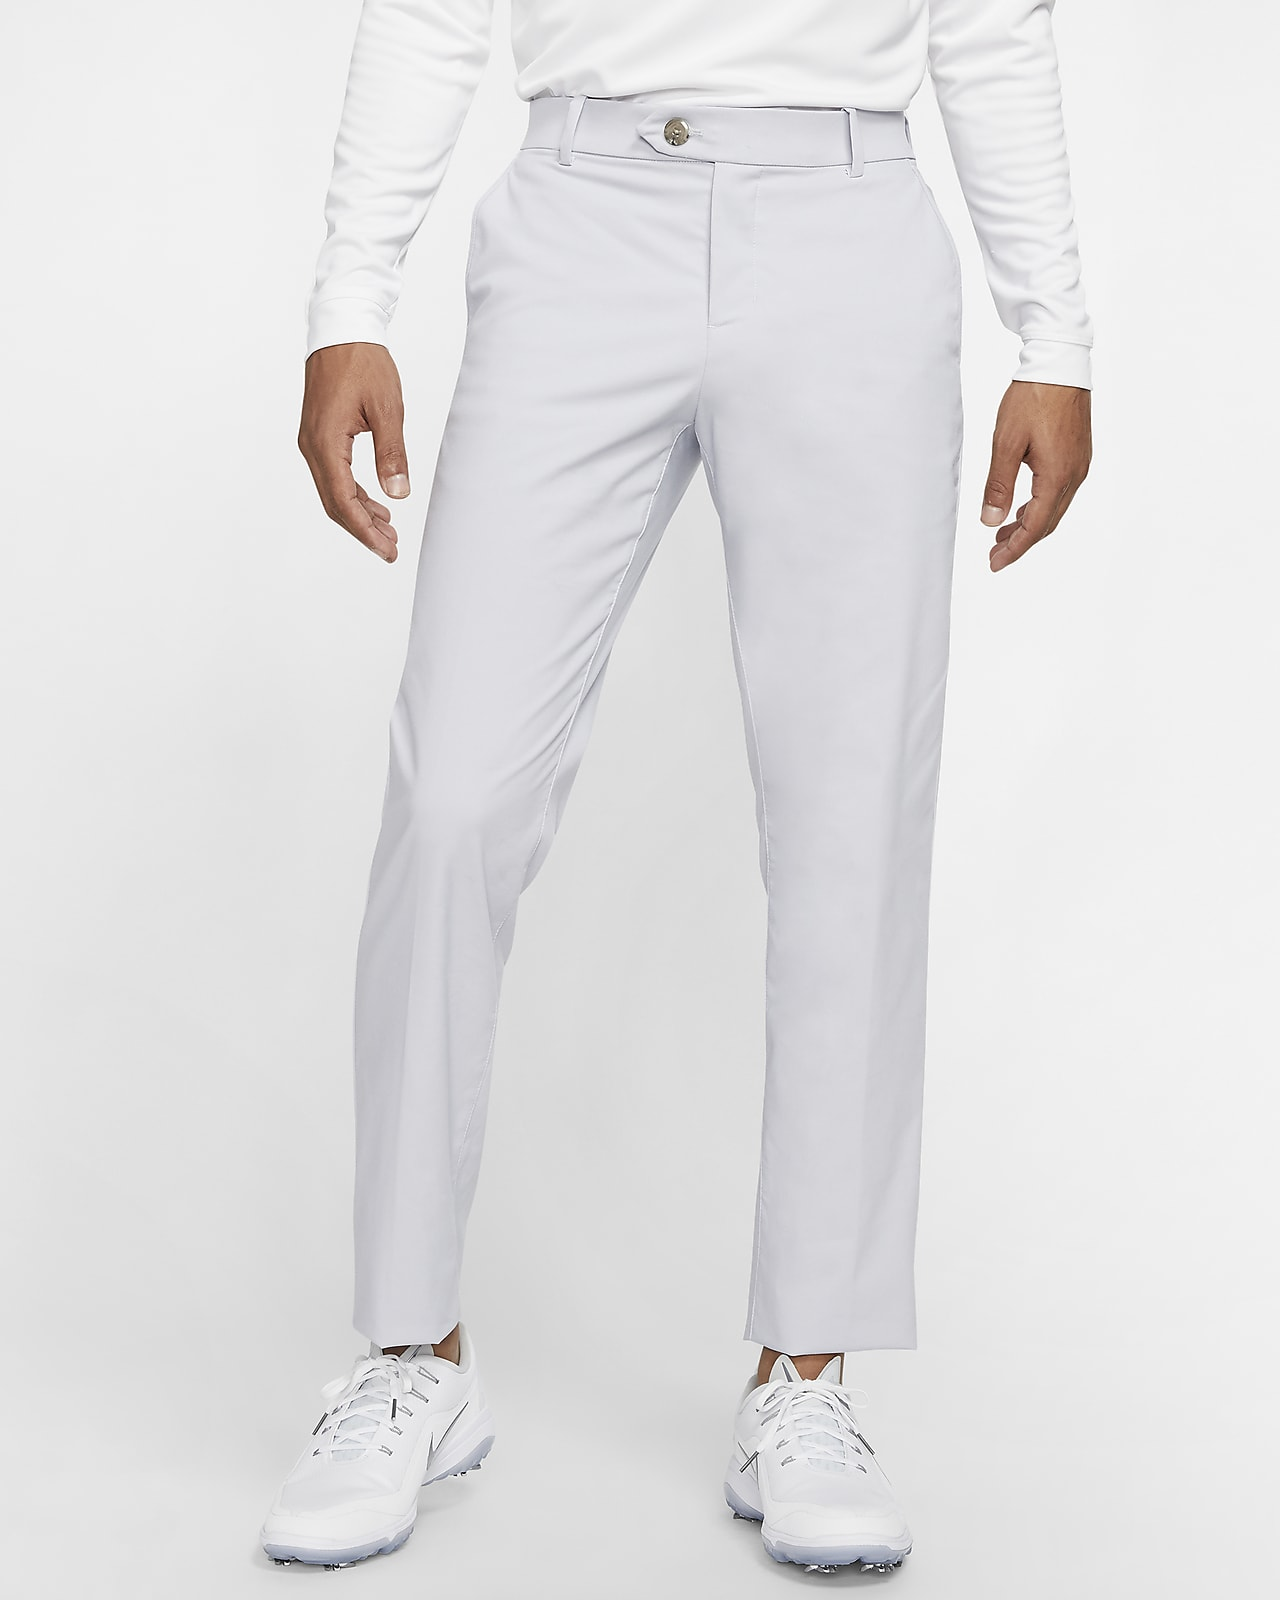 Nike Flex Player Men's Golf Trousers